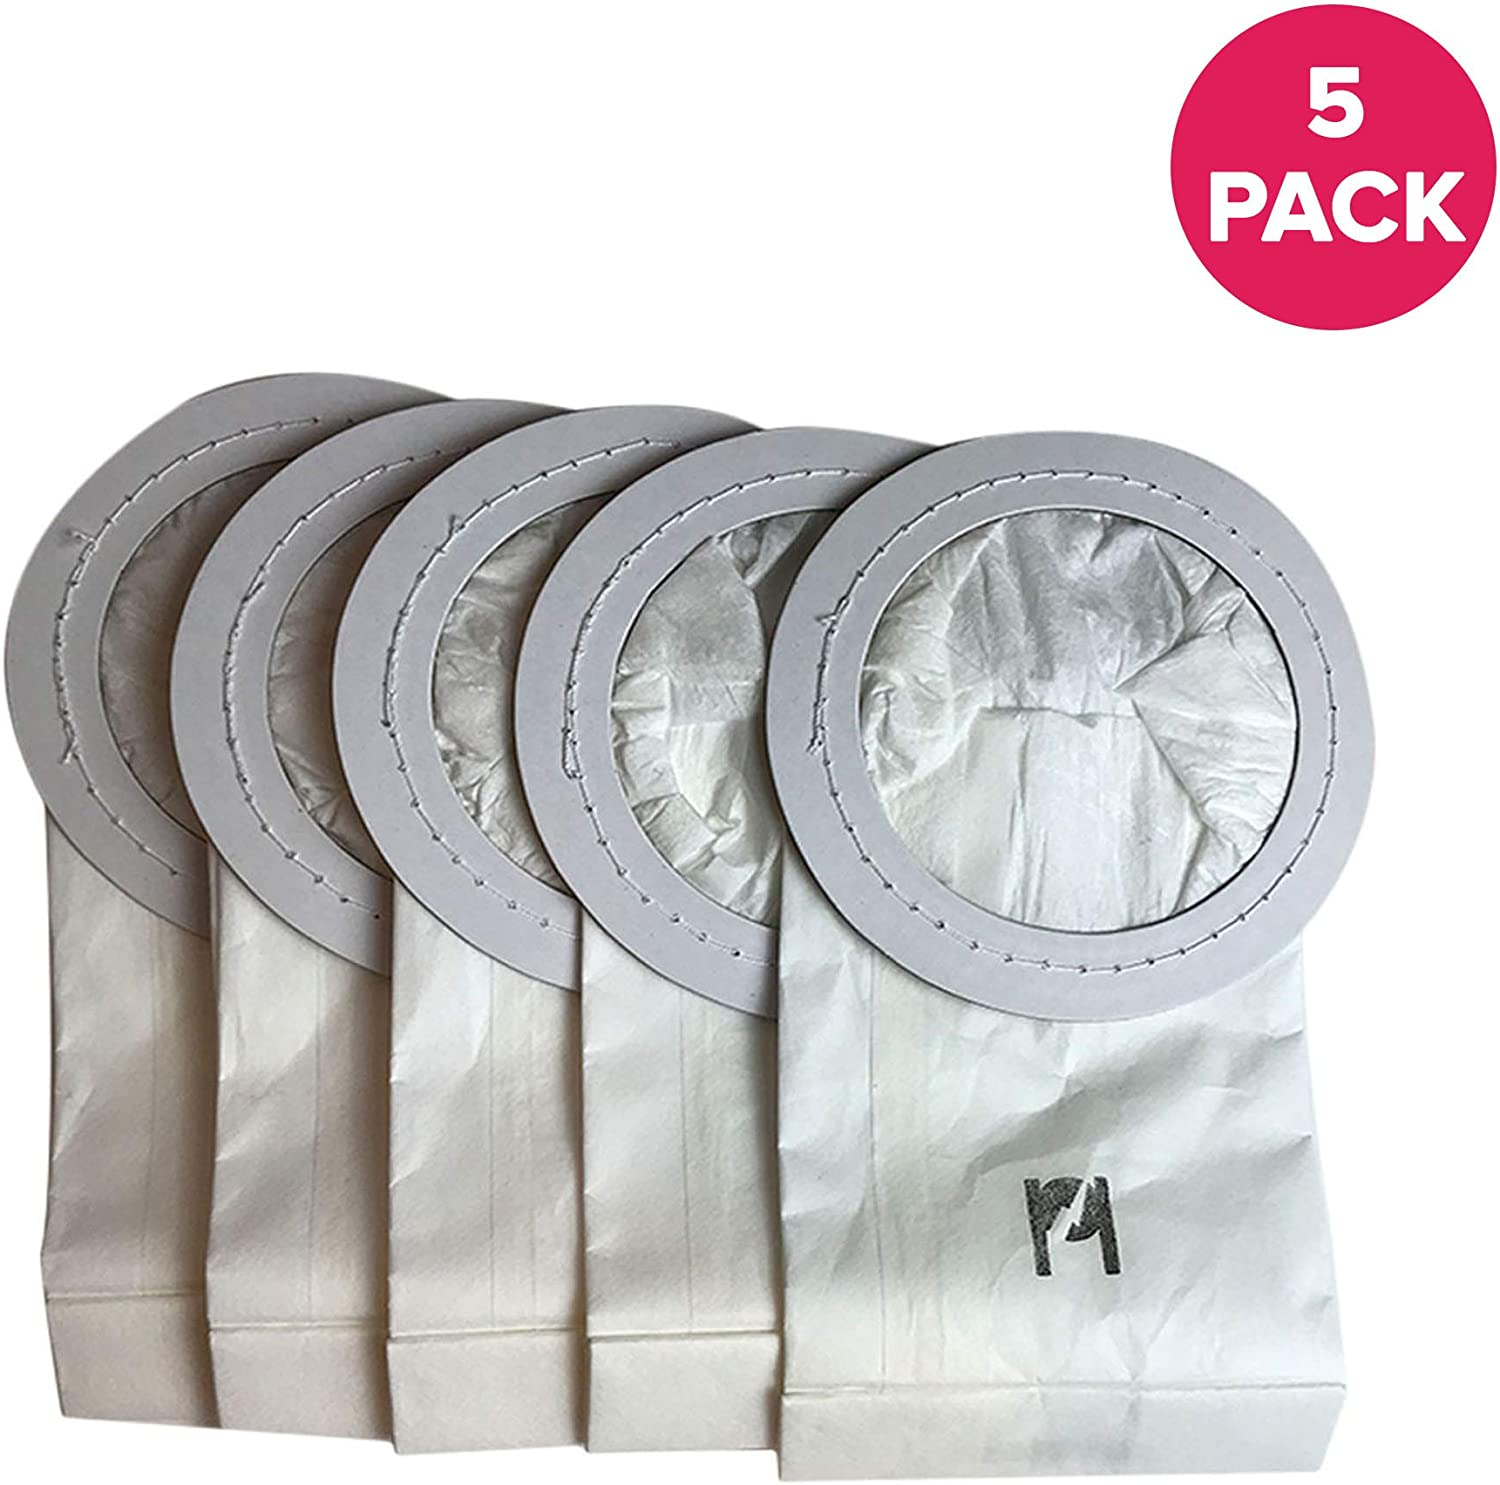 Crucial Vacuum Replacement Paper Vac Bags Part # PKIM765, 61963 - Compatible With Oreck Models IM76, IM88, IM90, IM98 - XL Ironman Vacuum Bags - Fit Kenmore, Sears Dynomite Celoc Canister (5 Pack)